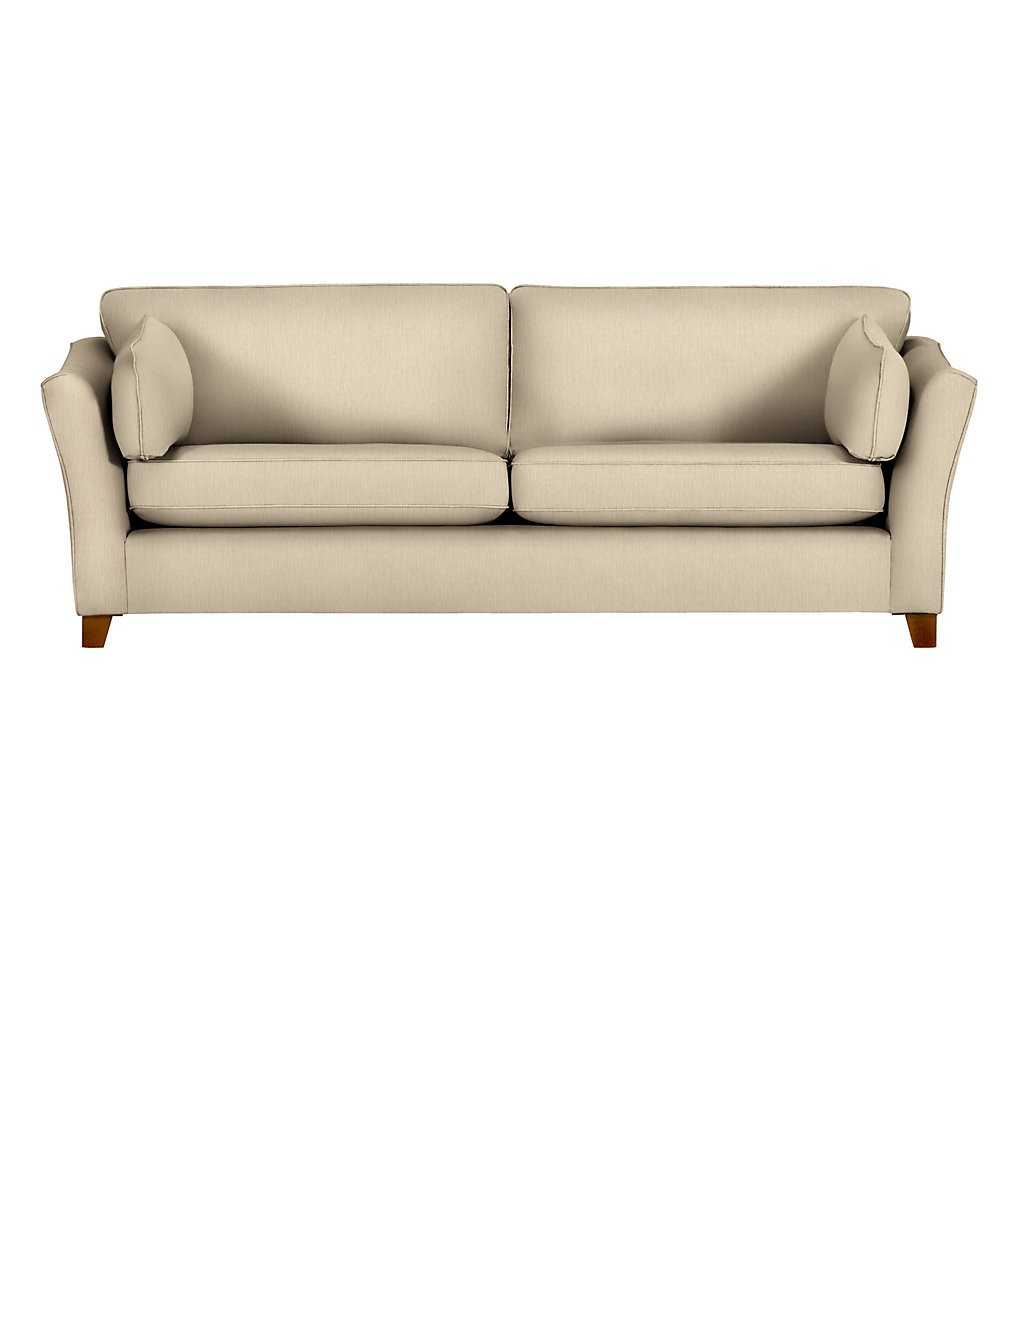 Abbey Petite Sofa Marks And Spencer Myminimalist Co